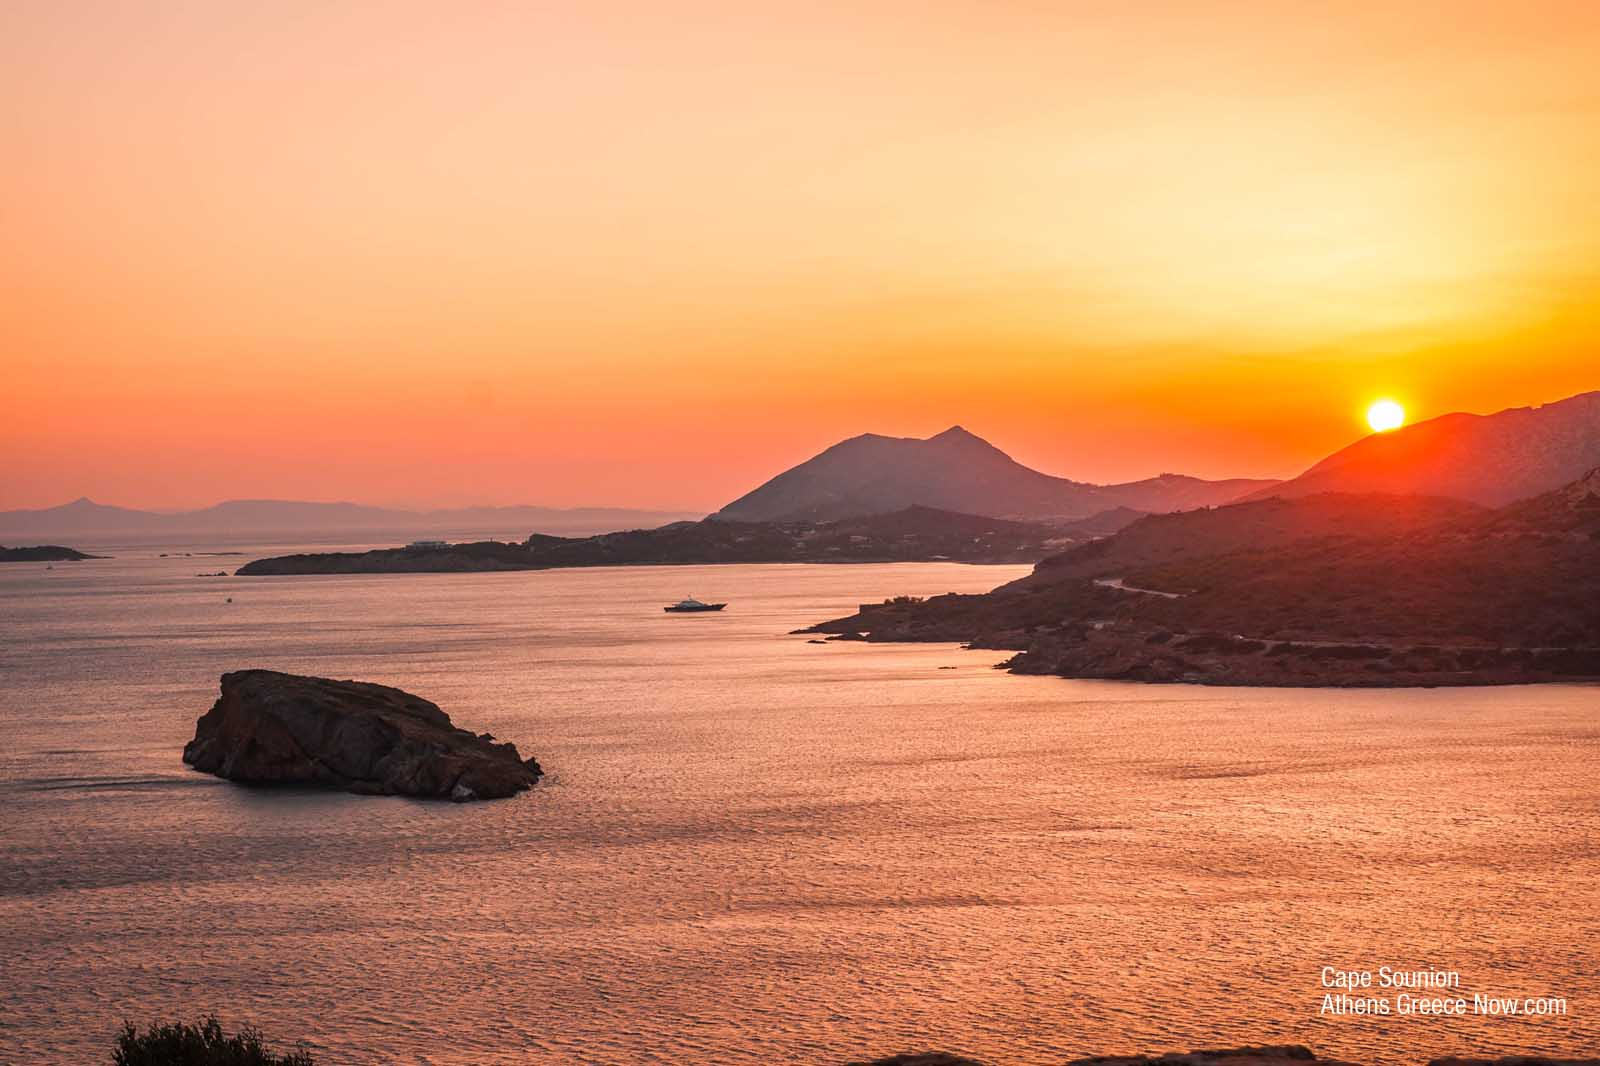 Enlarged sunset image - Cape Sounion Greece